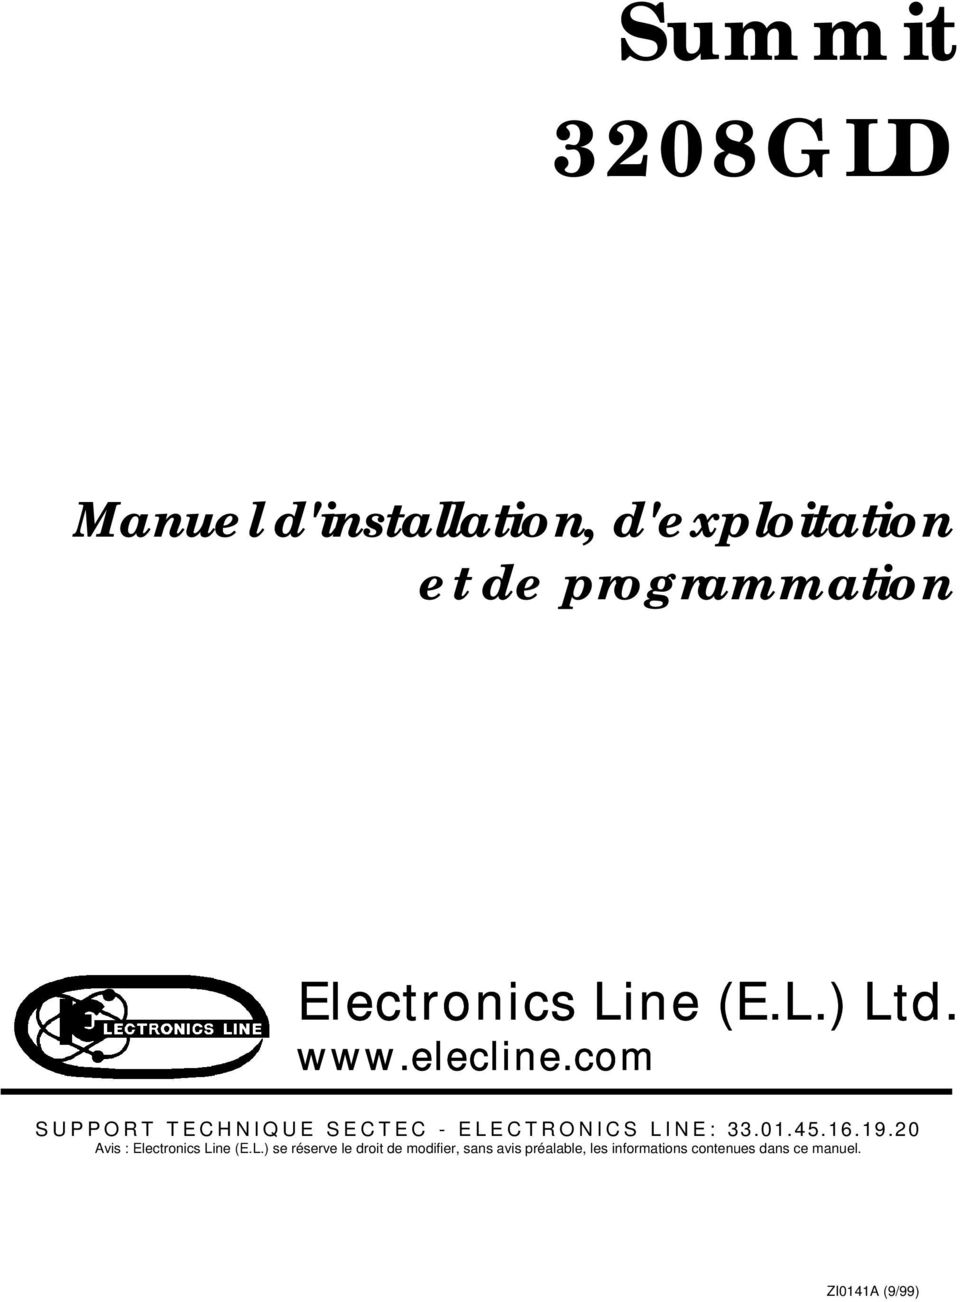 com SUPPORT TECHNIQUE SECTEC - ELECTRONICS LINE: 33.01.45.16.19.